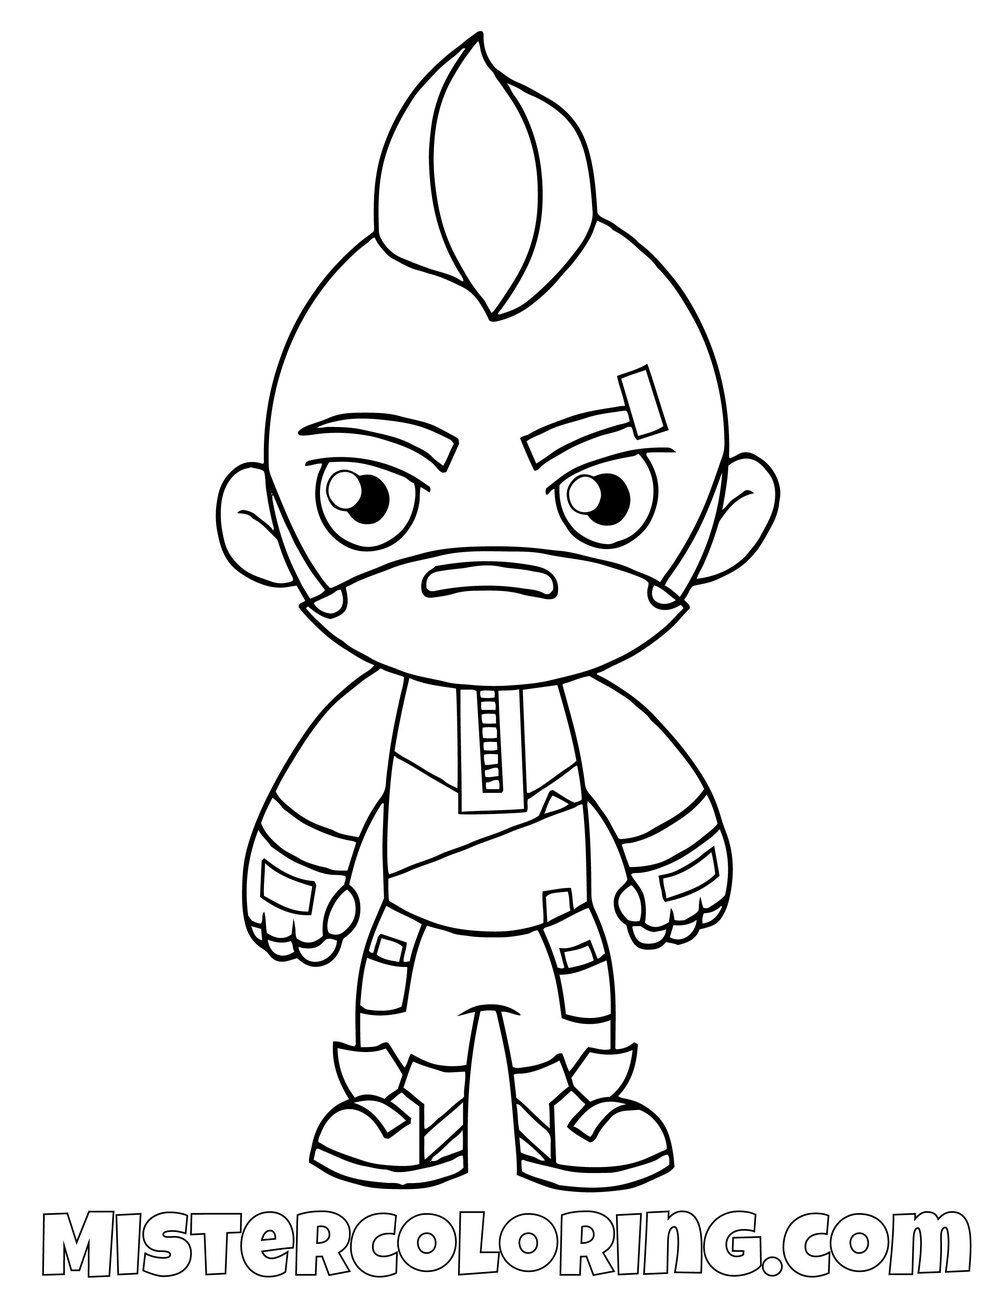 Free Drift Chibi Fortnite Skin Coloring Page For Kids Coloring